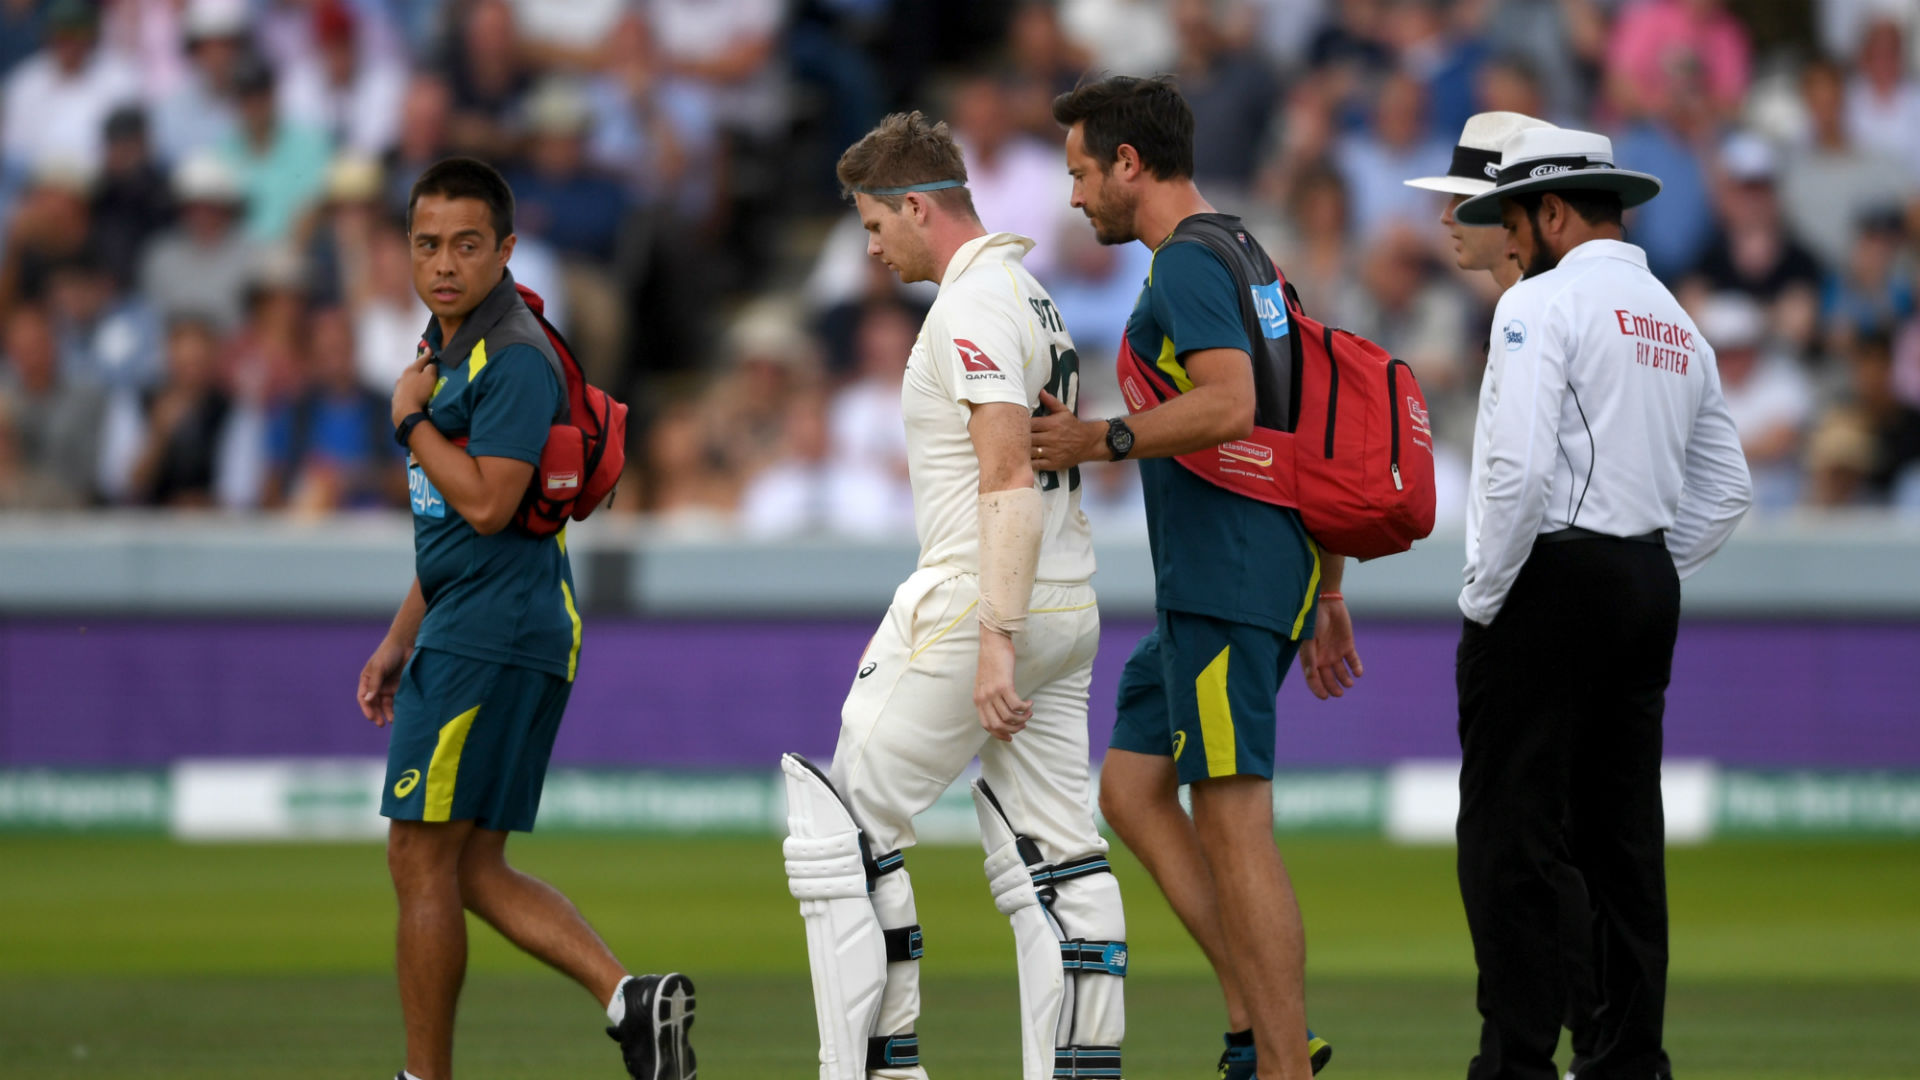 Ashes 2019: Joe Root urges England to 'jump on' third Test chance with Steve Smith out